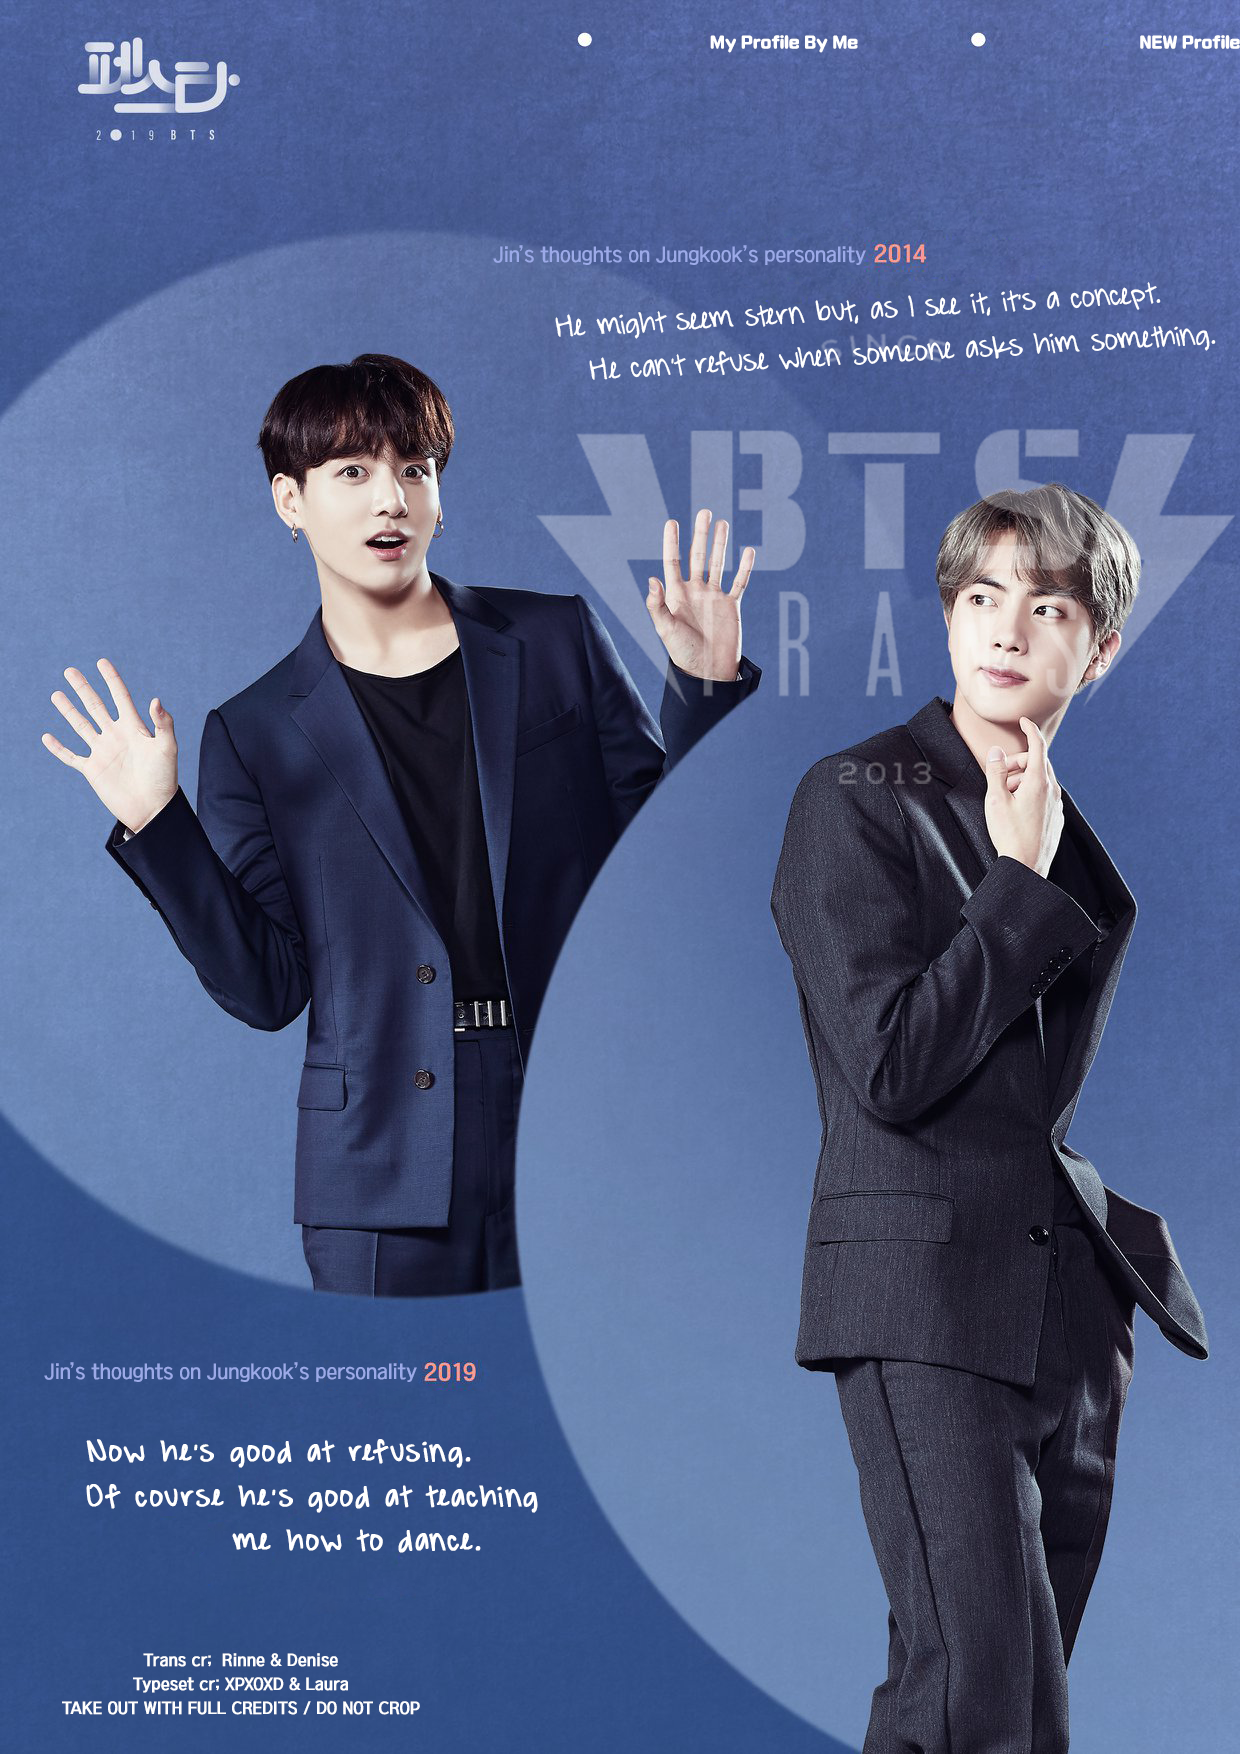 My Profile By You (Version 2/3): Jin about Jungkook — BTS